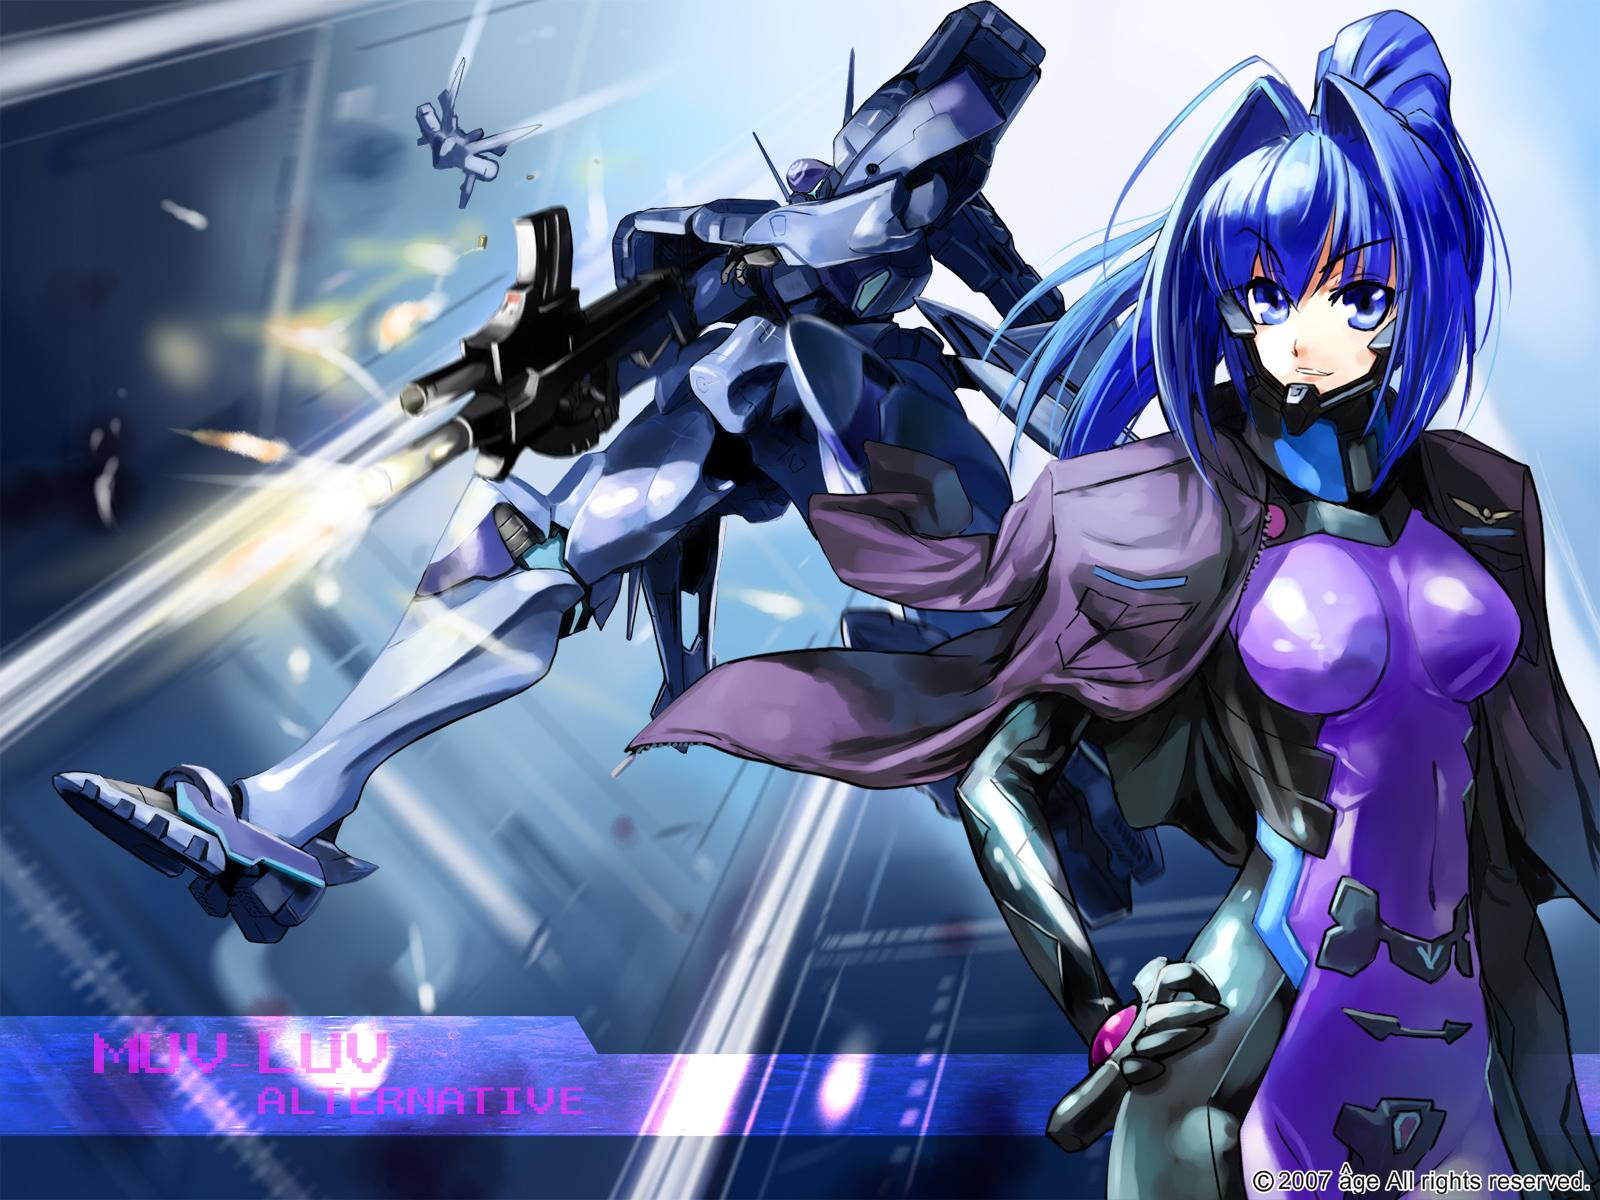 Muv Luv Wallpaper 11   1600 X 1200 stmednet 1600x1200